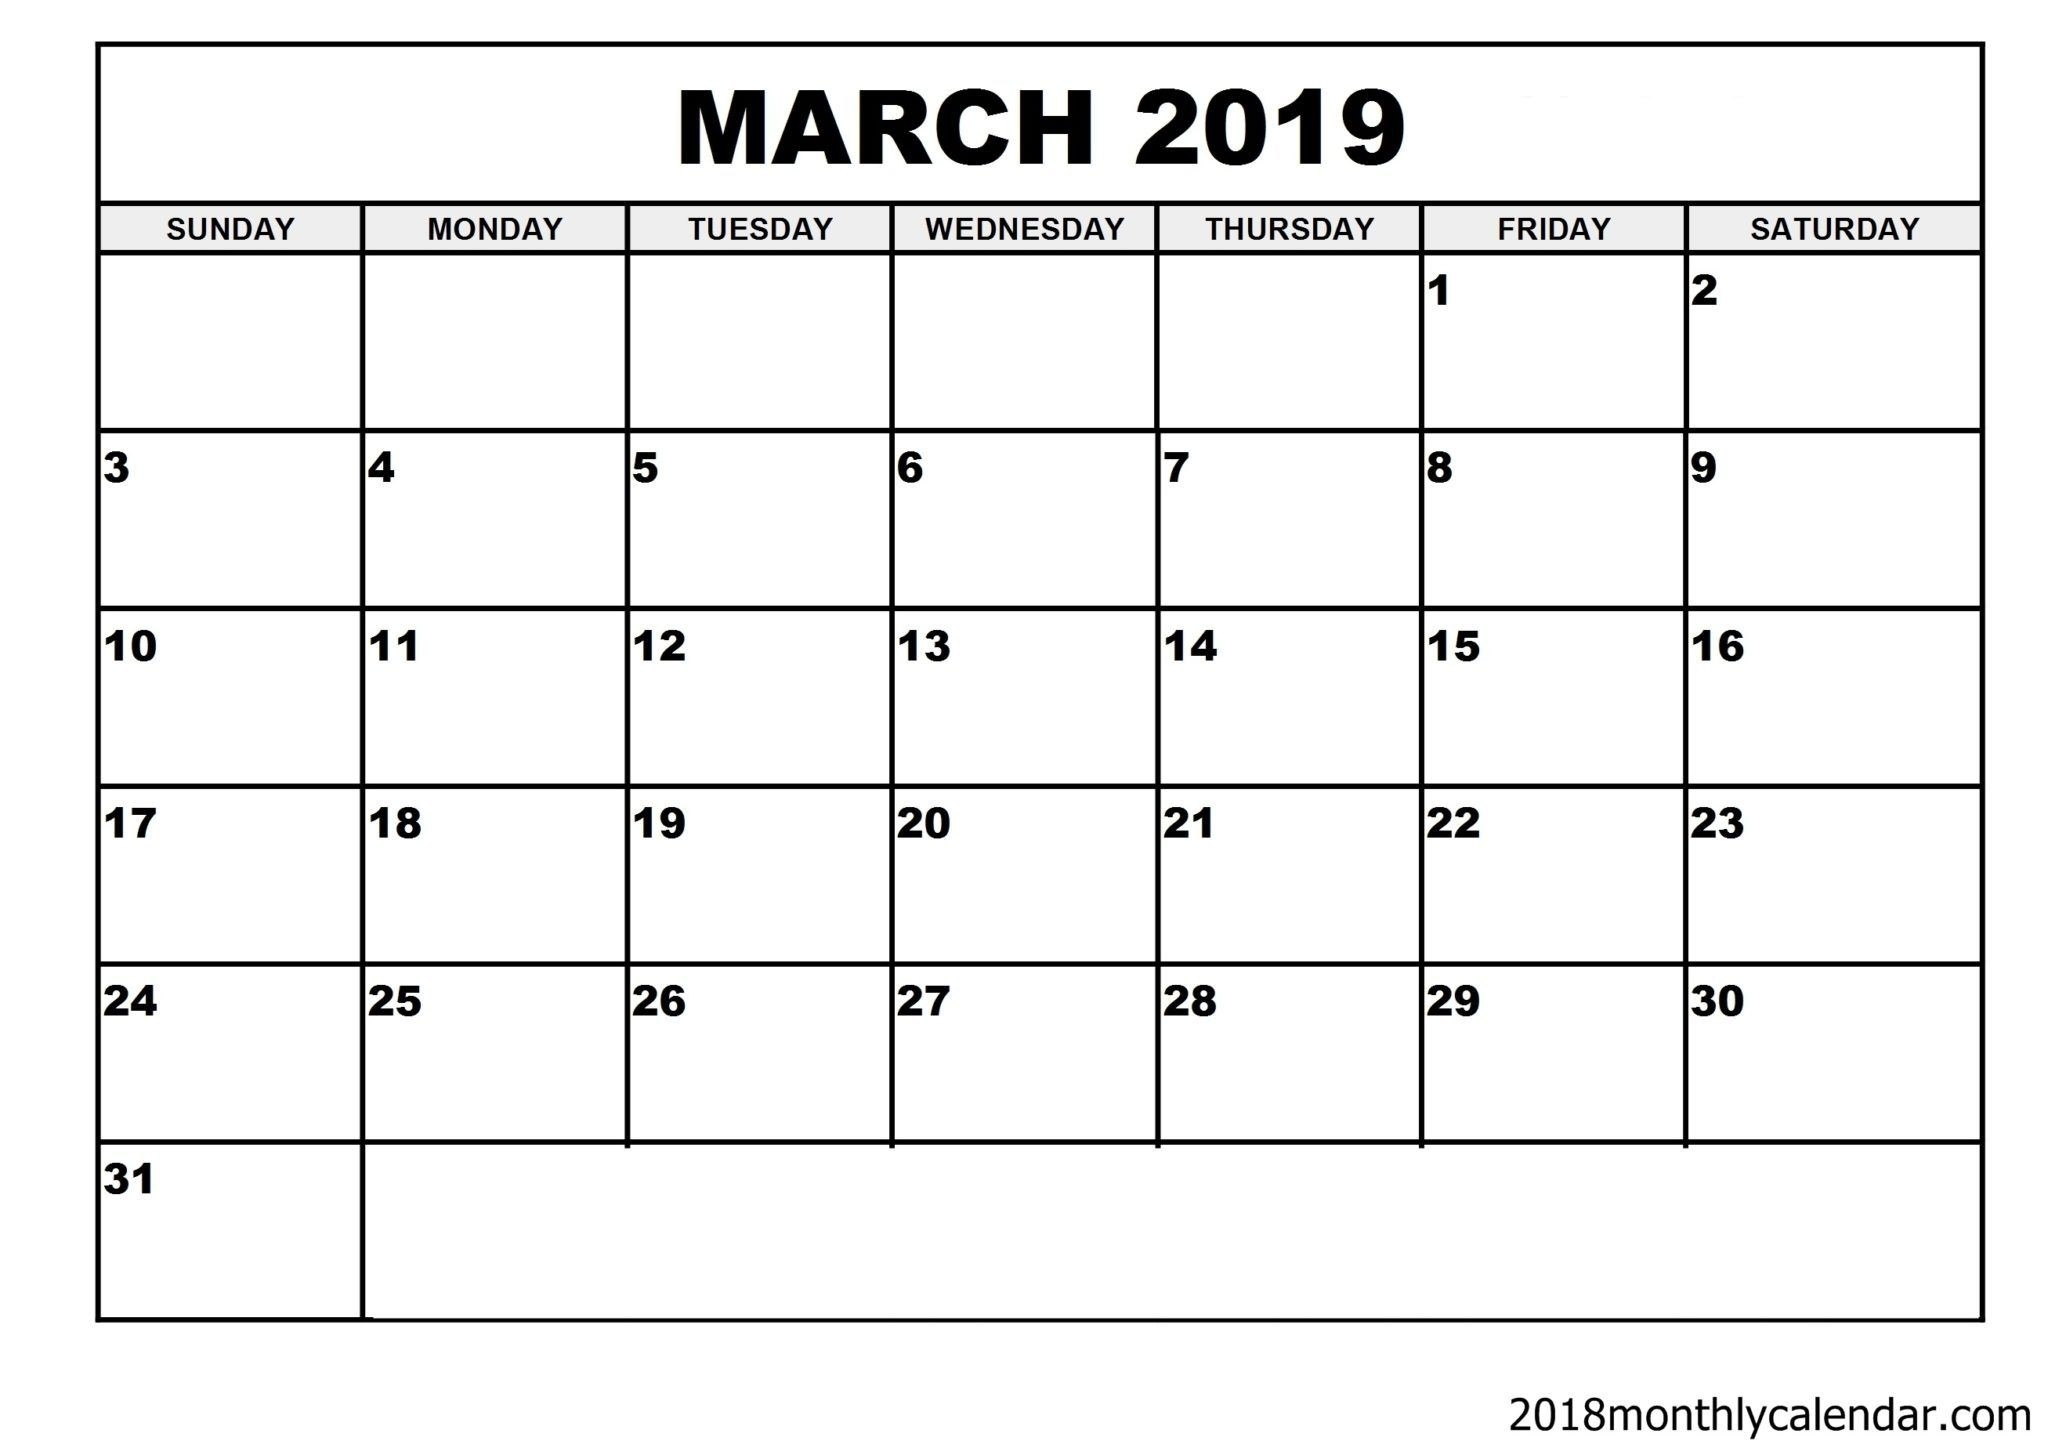 Download March 2019 Calendar – Blank Template - Editable-How To Design Writeable Monthly Bill-Payments Calendar Template 2020